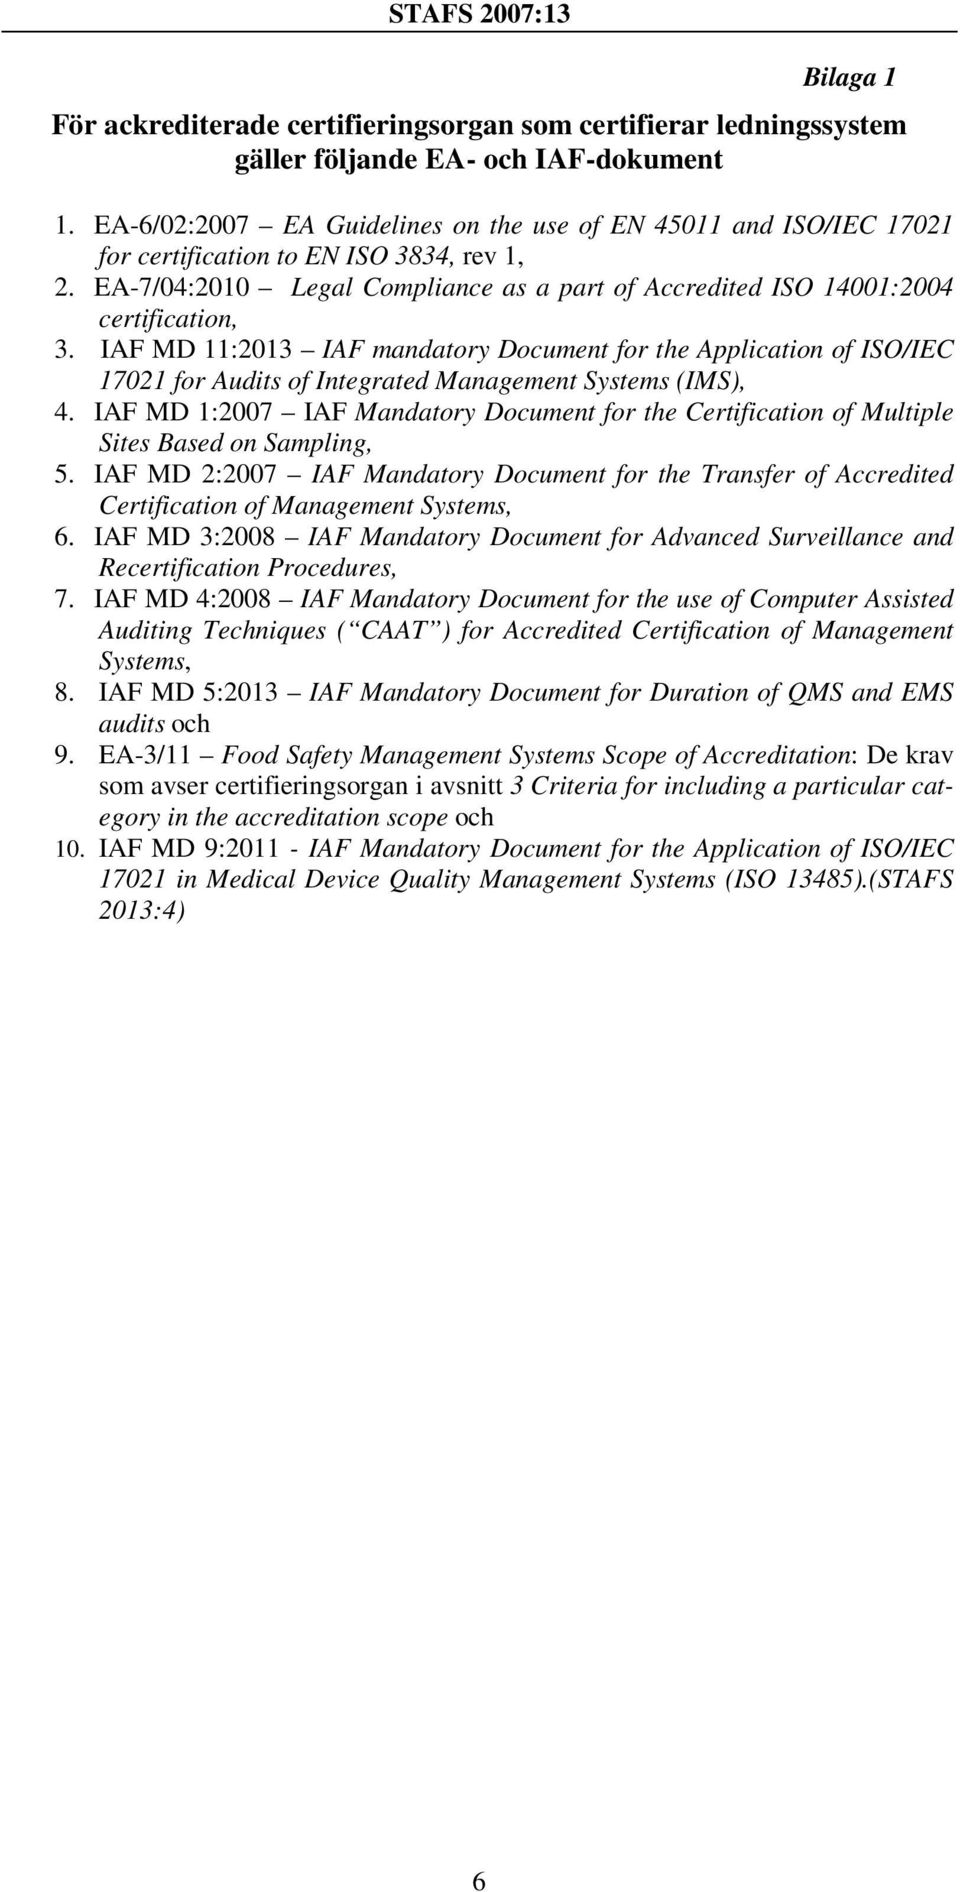 IAF MD 11:2013 IAF mandatory Document for the Application of ISO/IEC 17021 for Audits of Integrated Management Systems (IMS), 4.